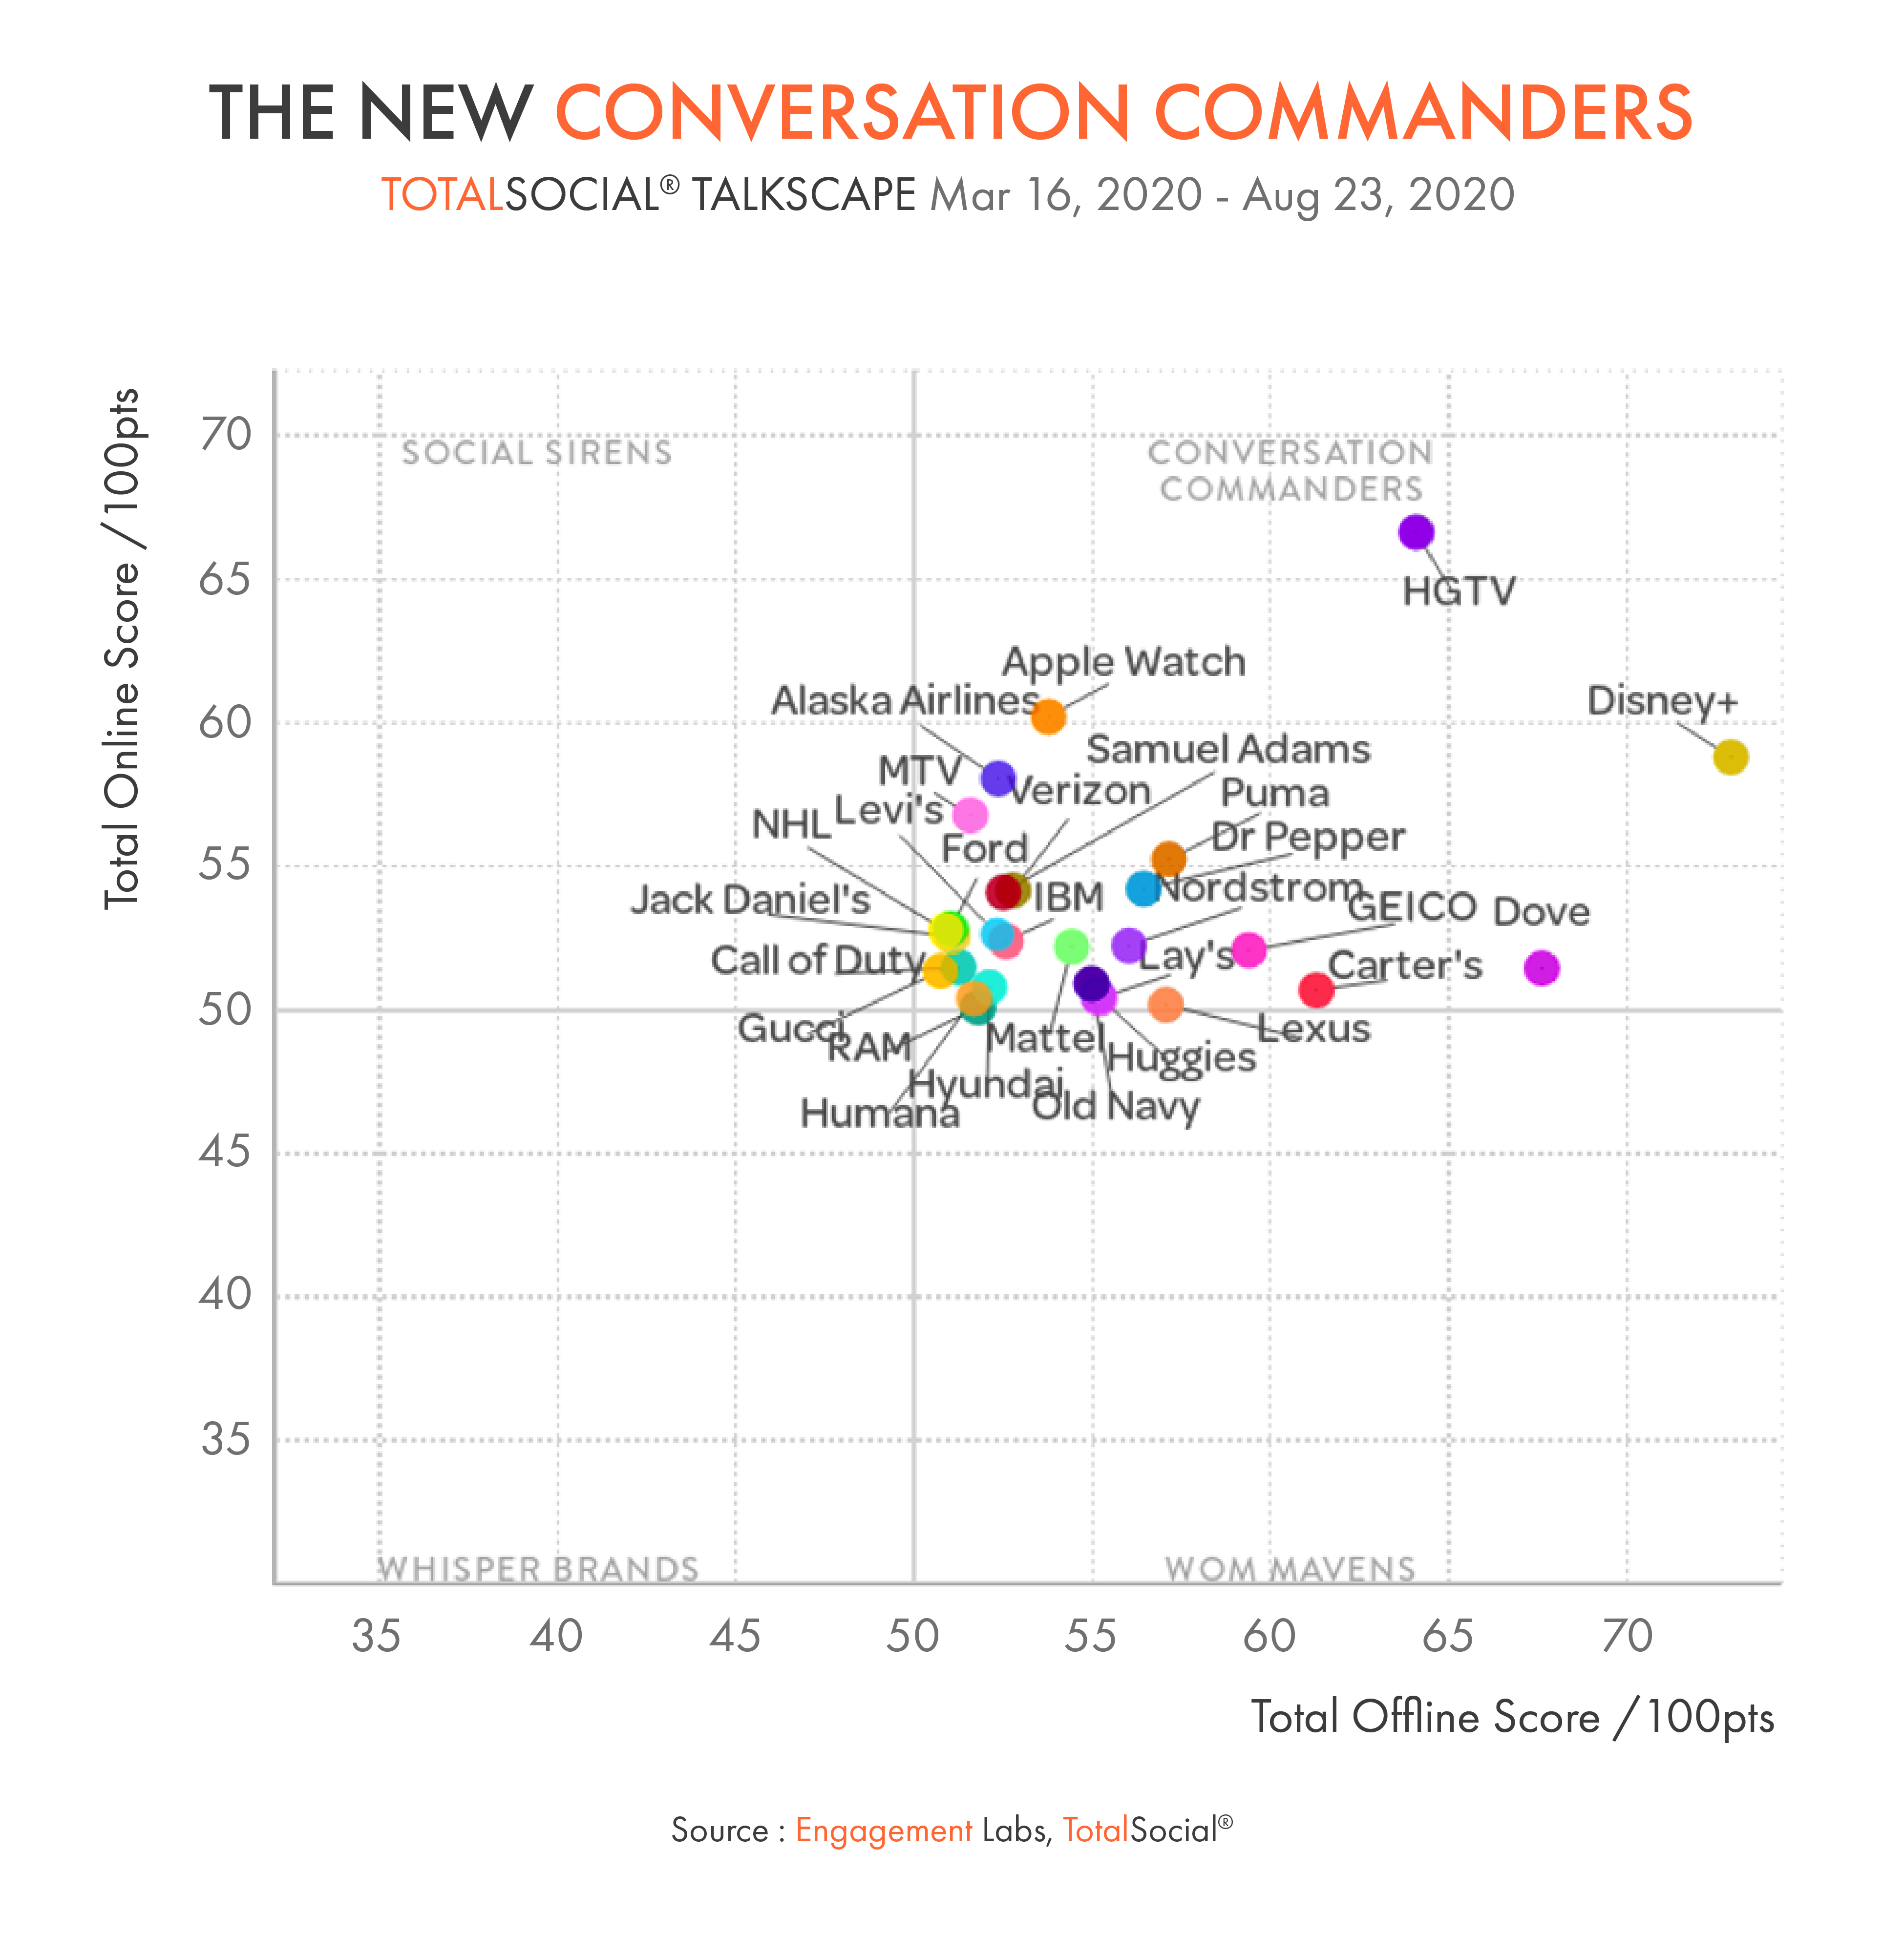 The New Conversation Commanders